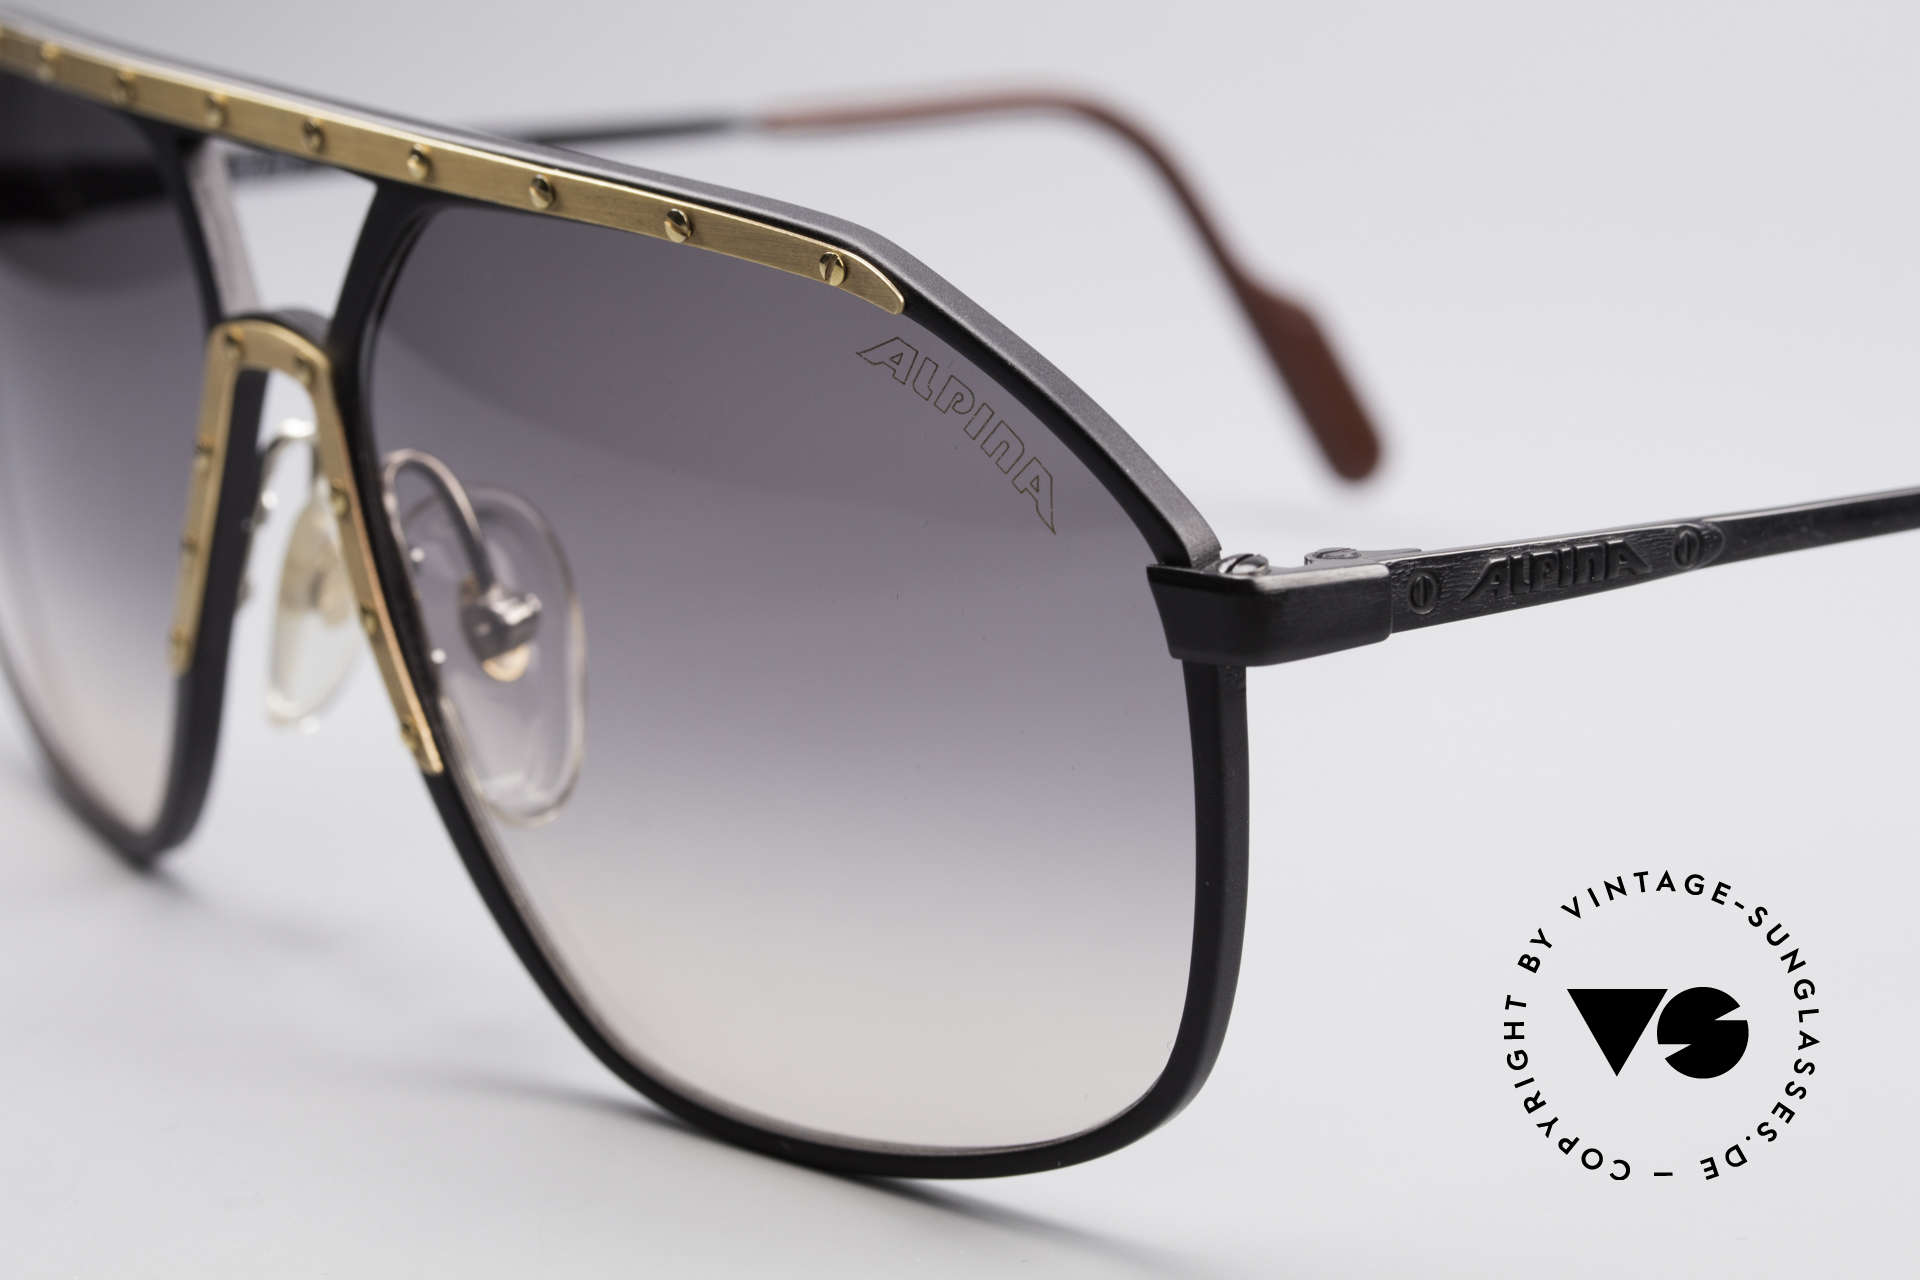 Alpina M1/7 Iconic Vintage Sunglasses, M1/7 was made from 1988 to 1992 in large size 64-15, Made for Men